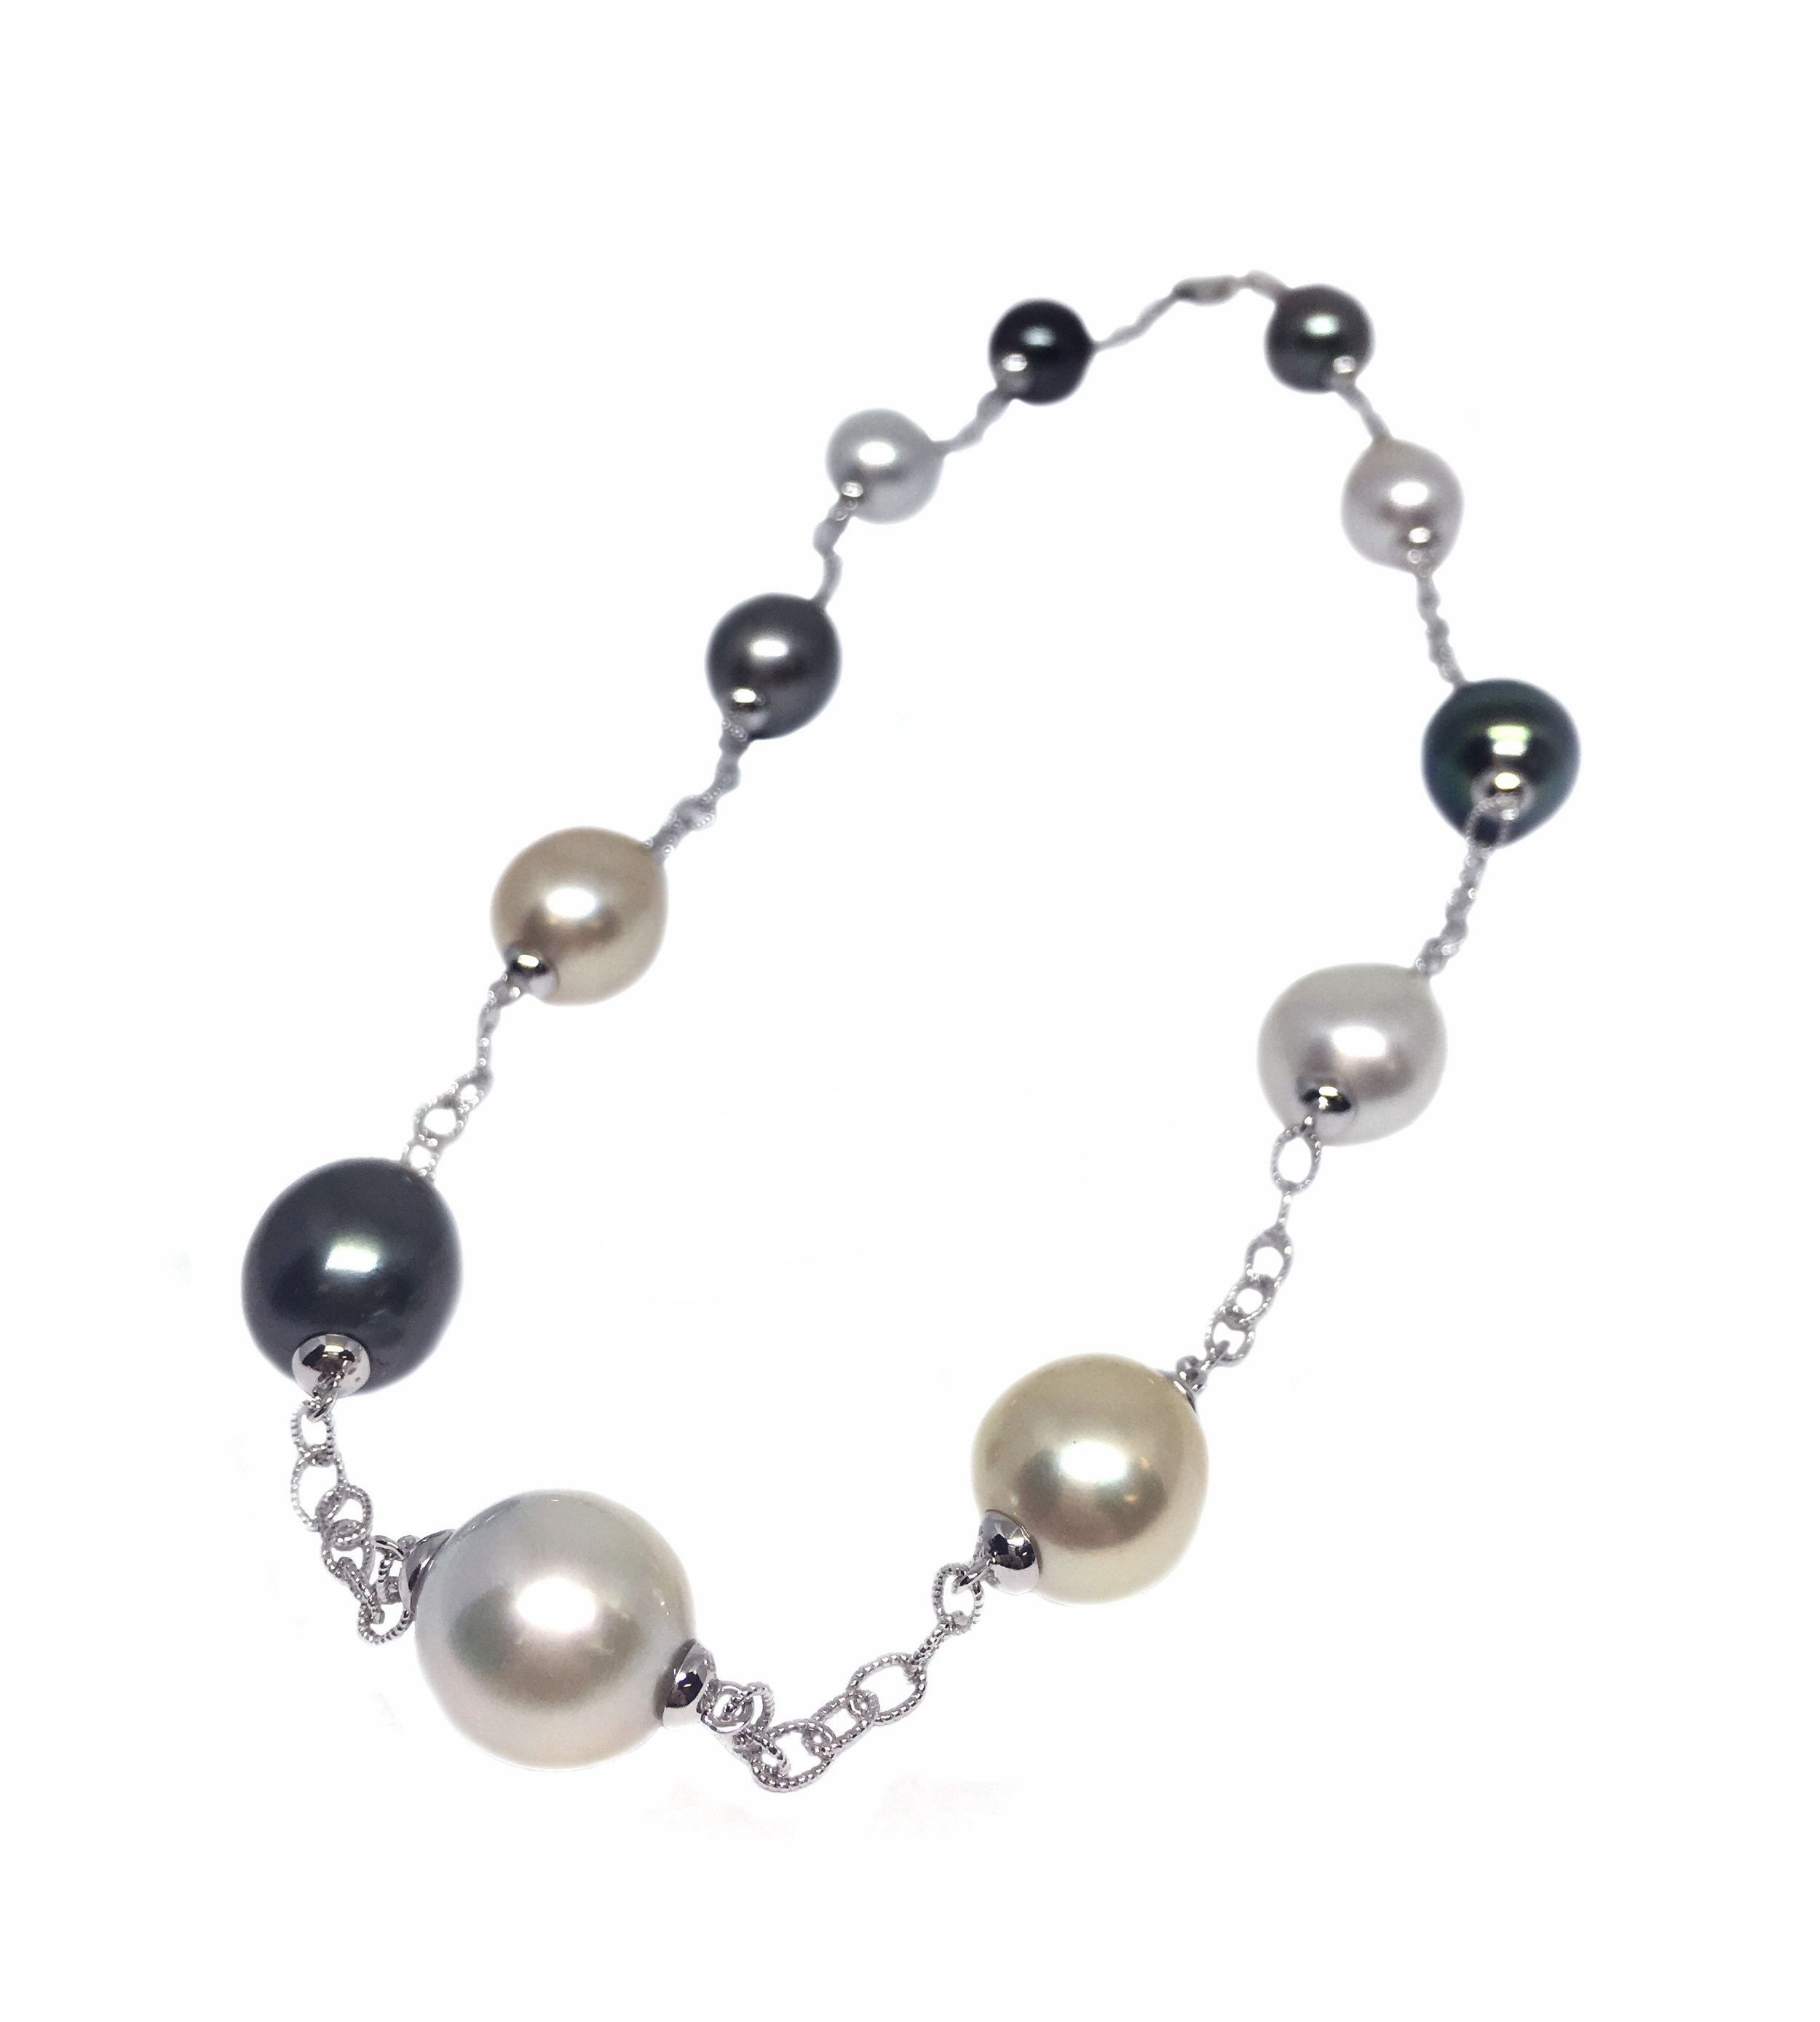 South Sea Pearl Station Necklace